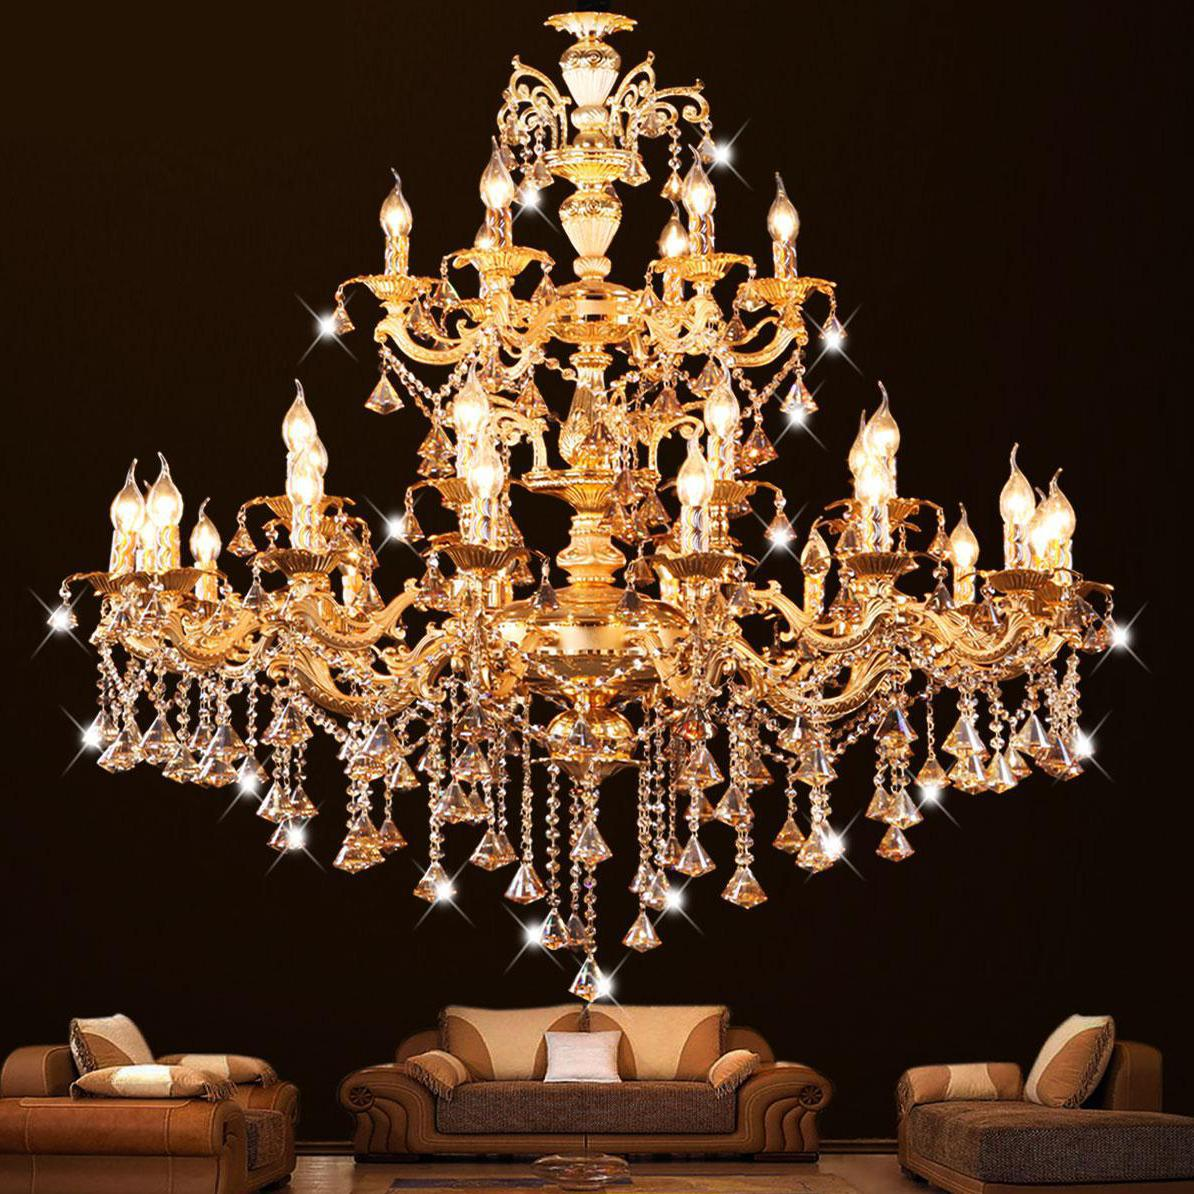 gramercy люстра atom large chandelier Penthouse Large Royal gold chandelier pendant K9 diamond Crystal lighting luxury Foyer Church Chandelier Led Lustres E Pendentes